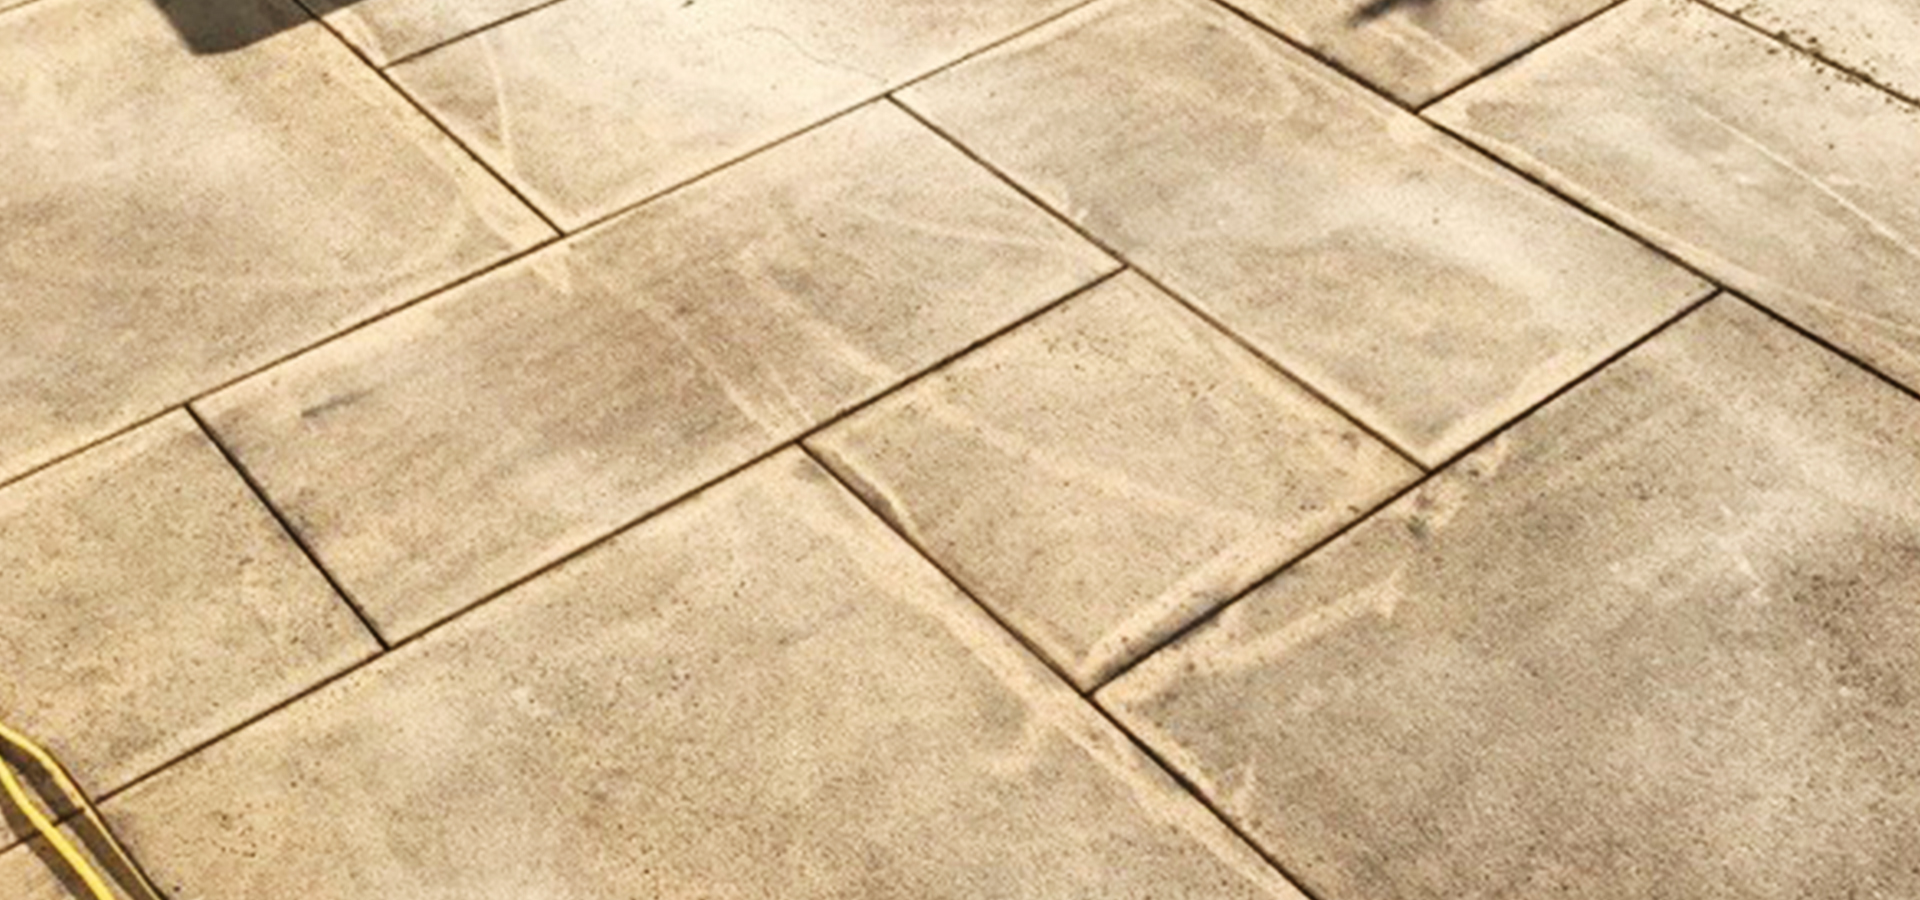 Pavers with dirt and grime build-up